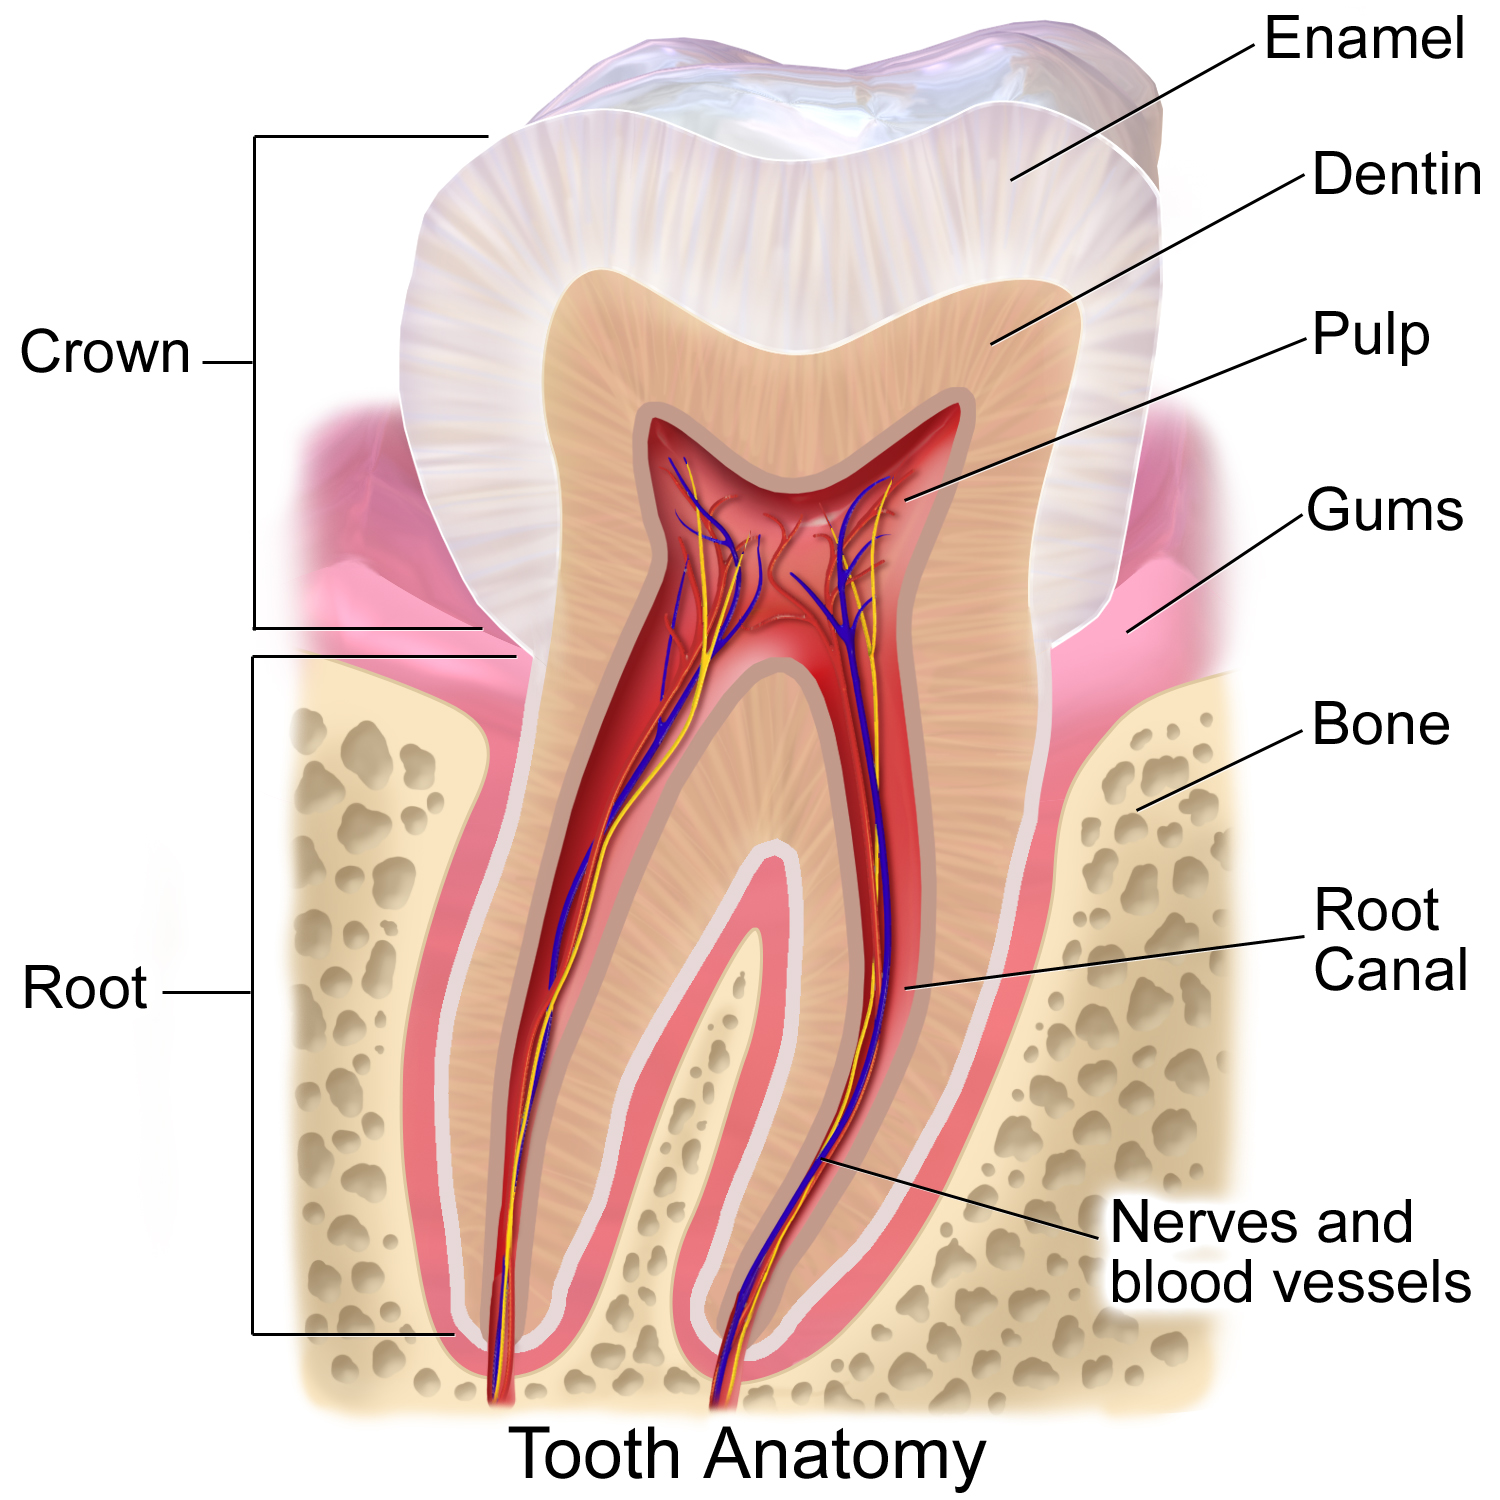 Cementum Is What Covers Most Of The Root Of The Tooth It Helps To